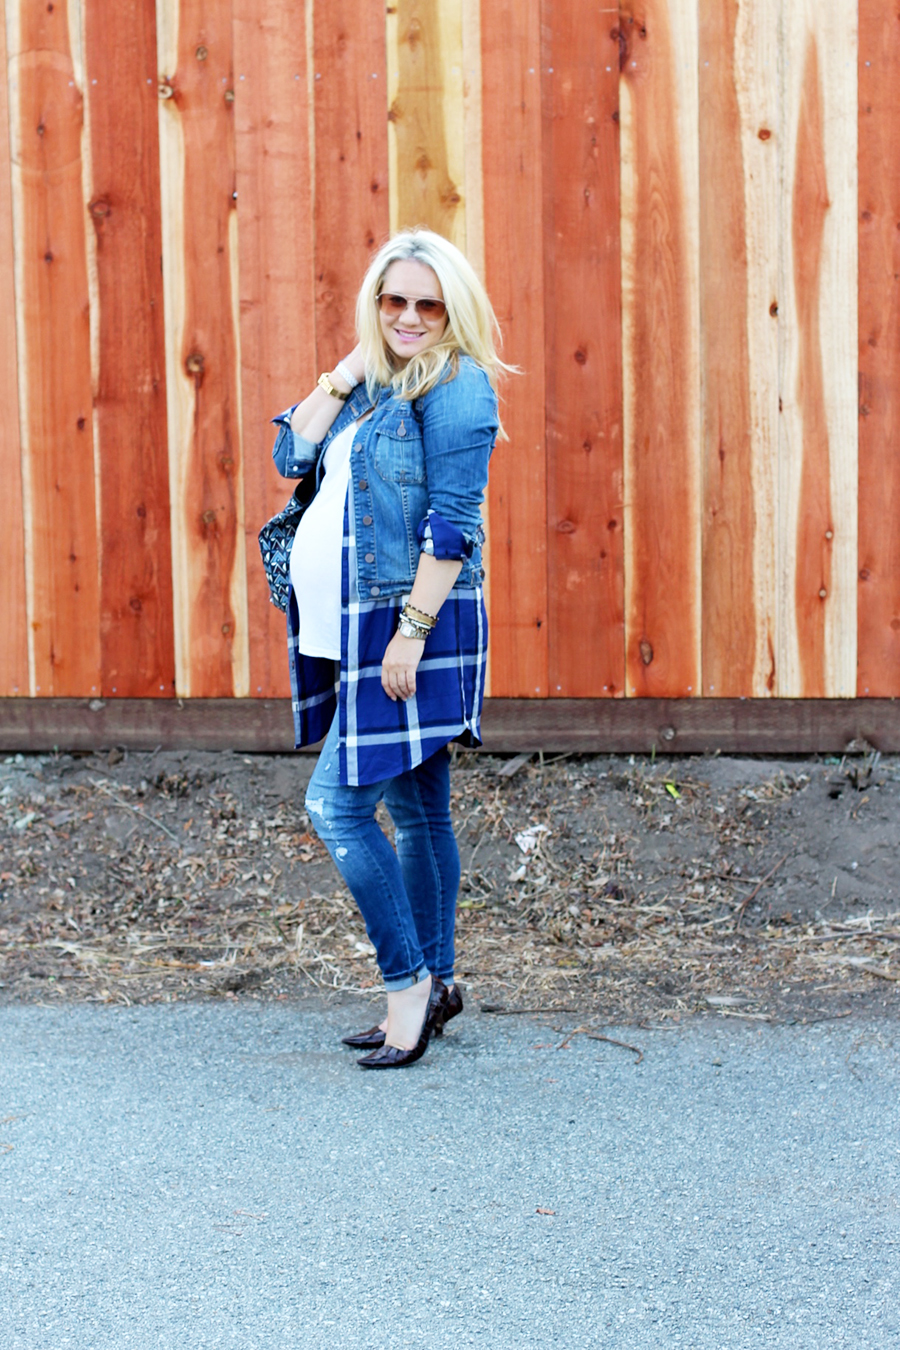 Plaid Shirtdress-Maternity Style-Styling Your Baby Bump-Styling Tips-Pregnancy Style-Have Need Want 11